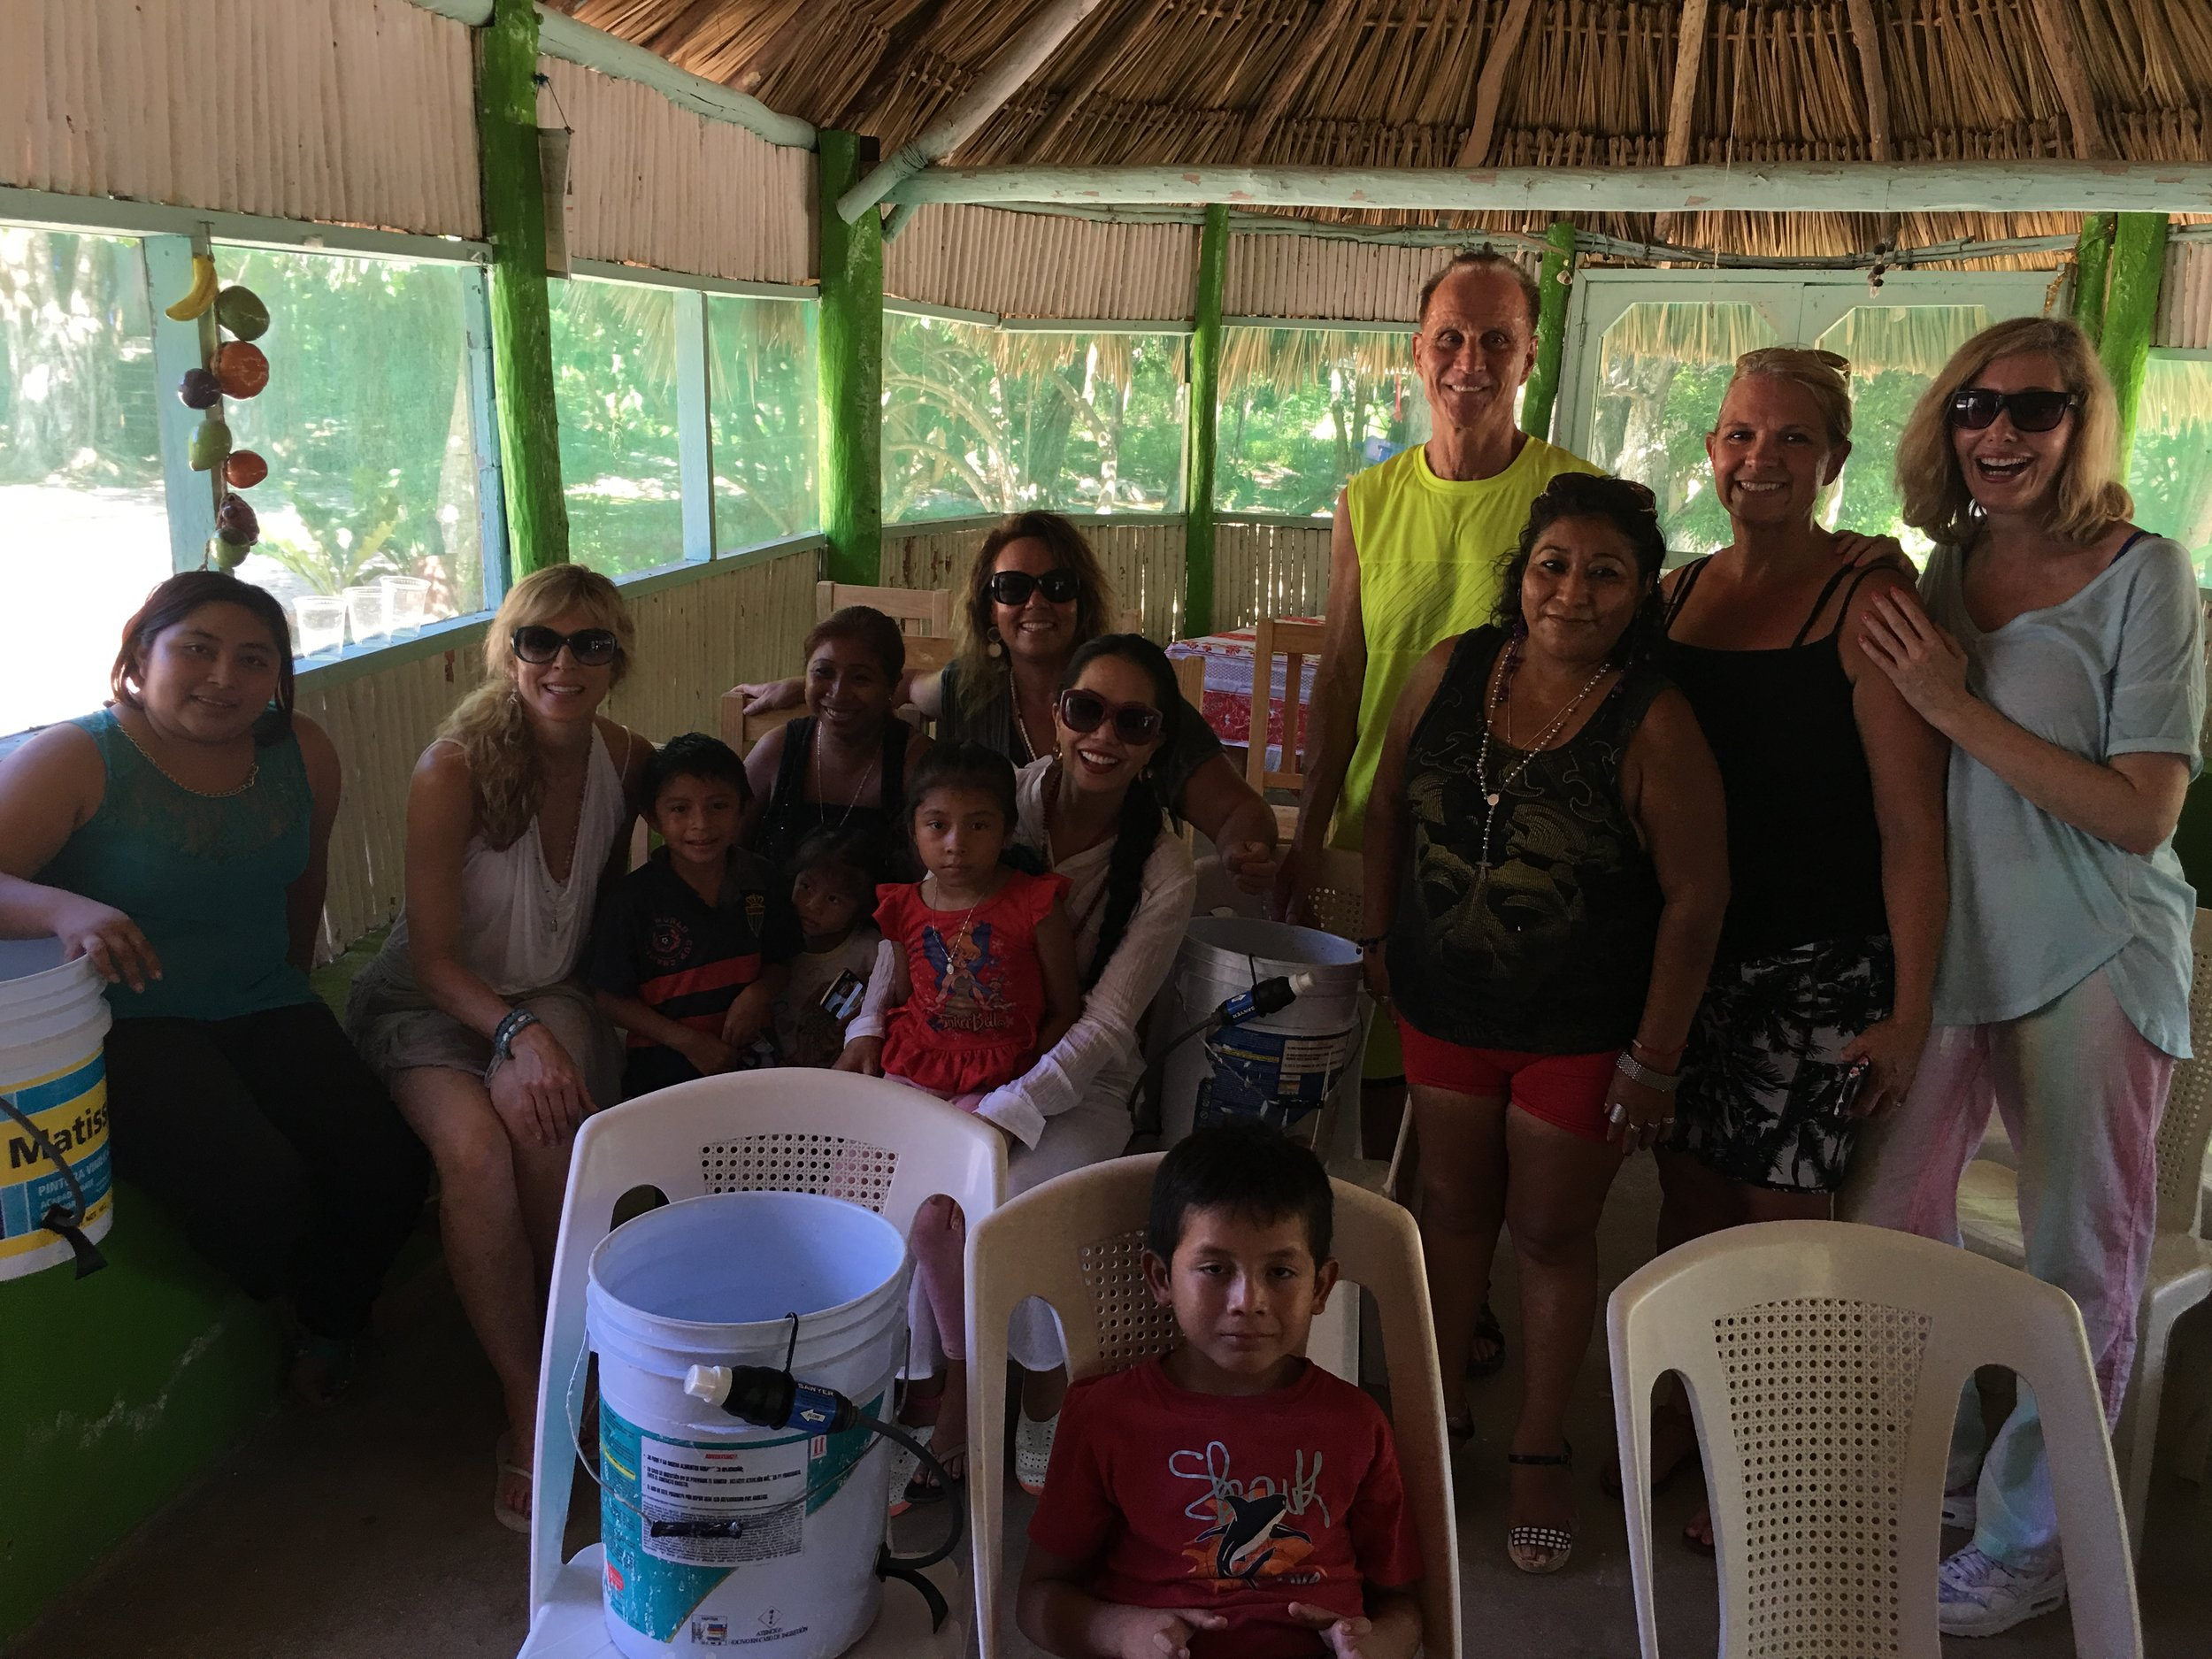 Water Distribution Life Source Retreats with Marla Maples Tess Mauricio, Michelle Young, Michele Clark and Rico at Dos Palmas August 11 2016.JPG